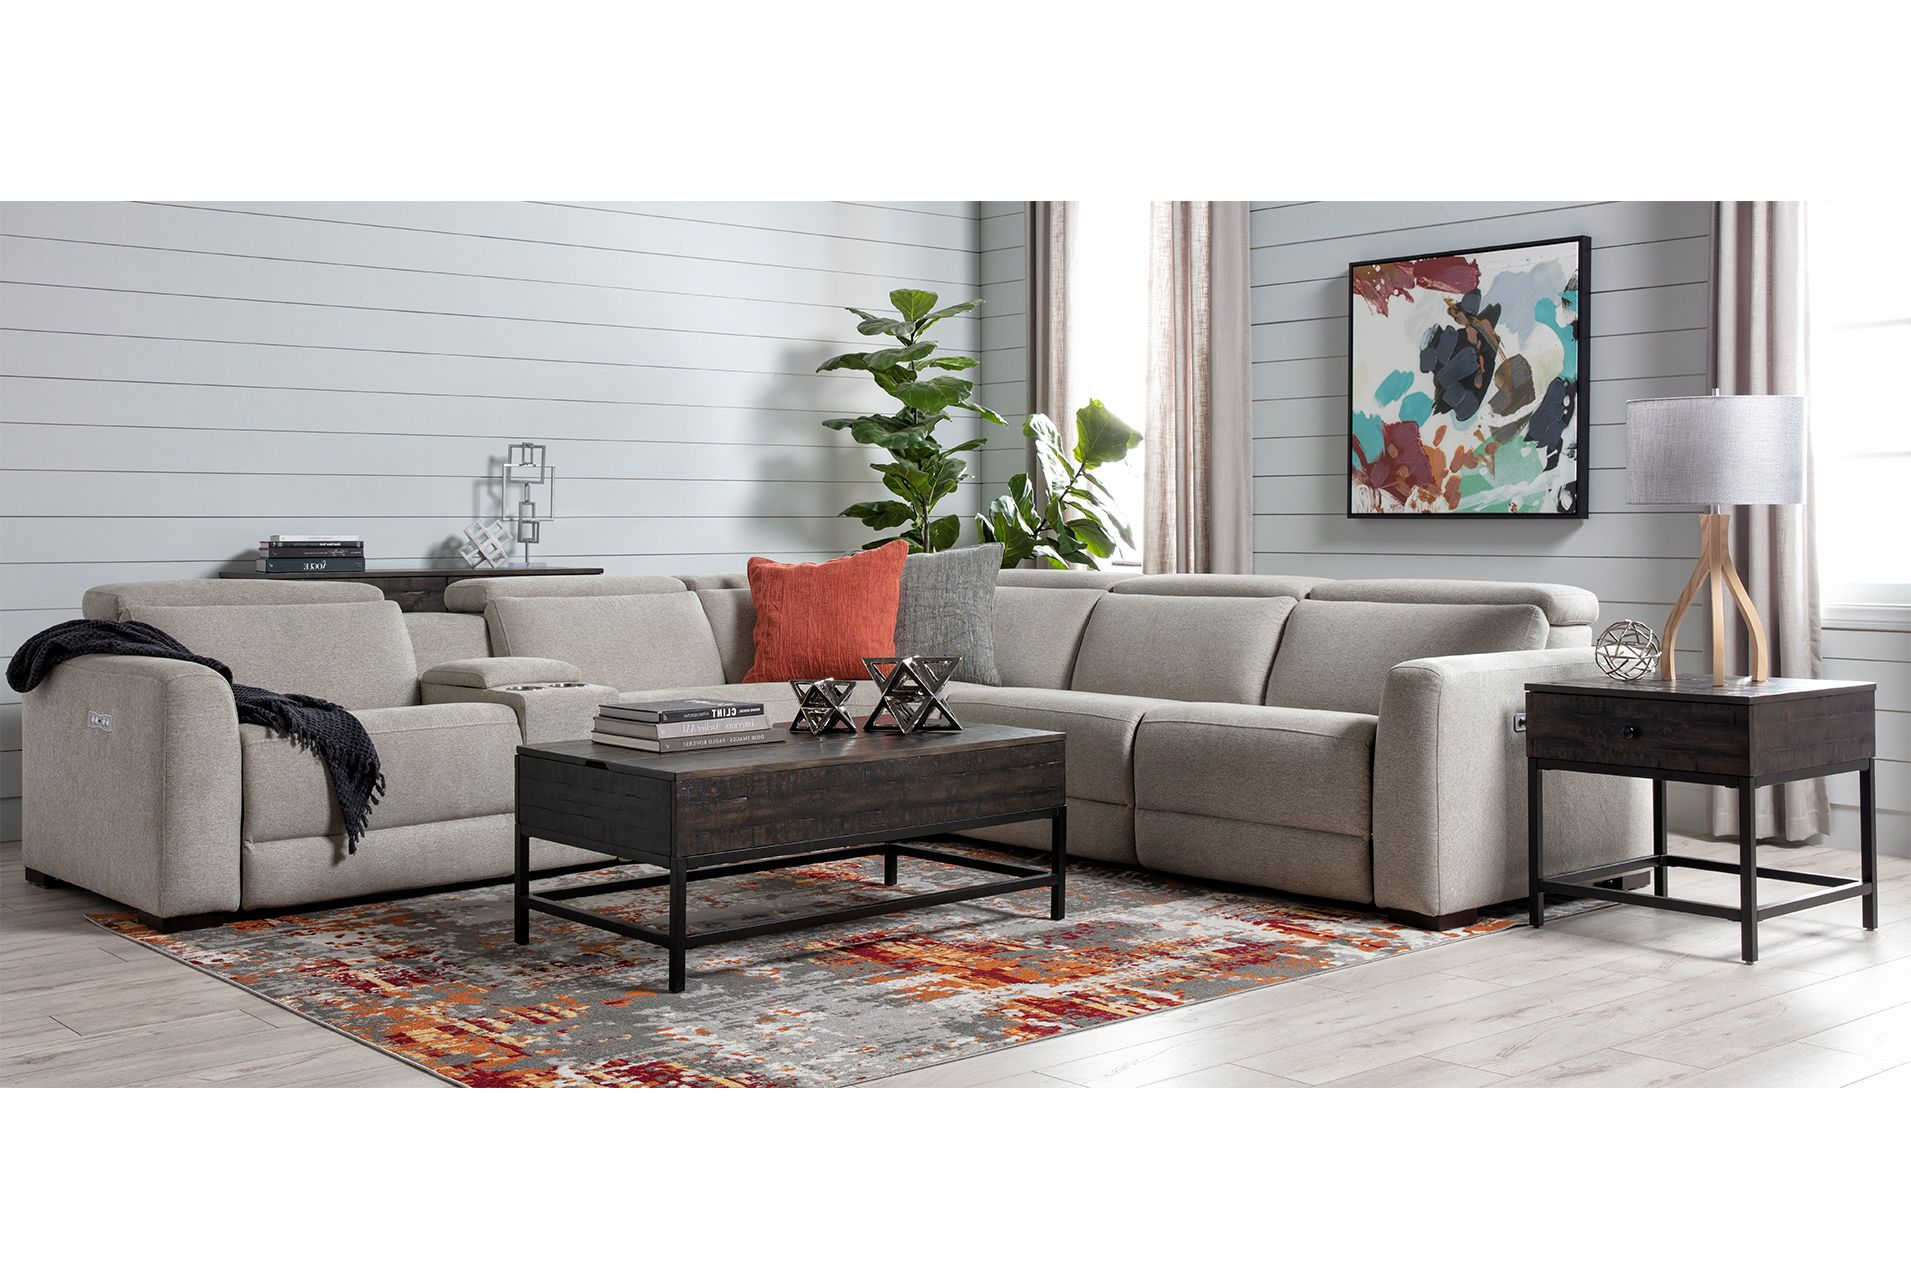 Union City Lift Top Coffee Table Bark American Signature Furniture Coffee Table Living Room Table Lift Top Coffee Table [ 1000 x 1000 Pixel ]